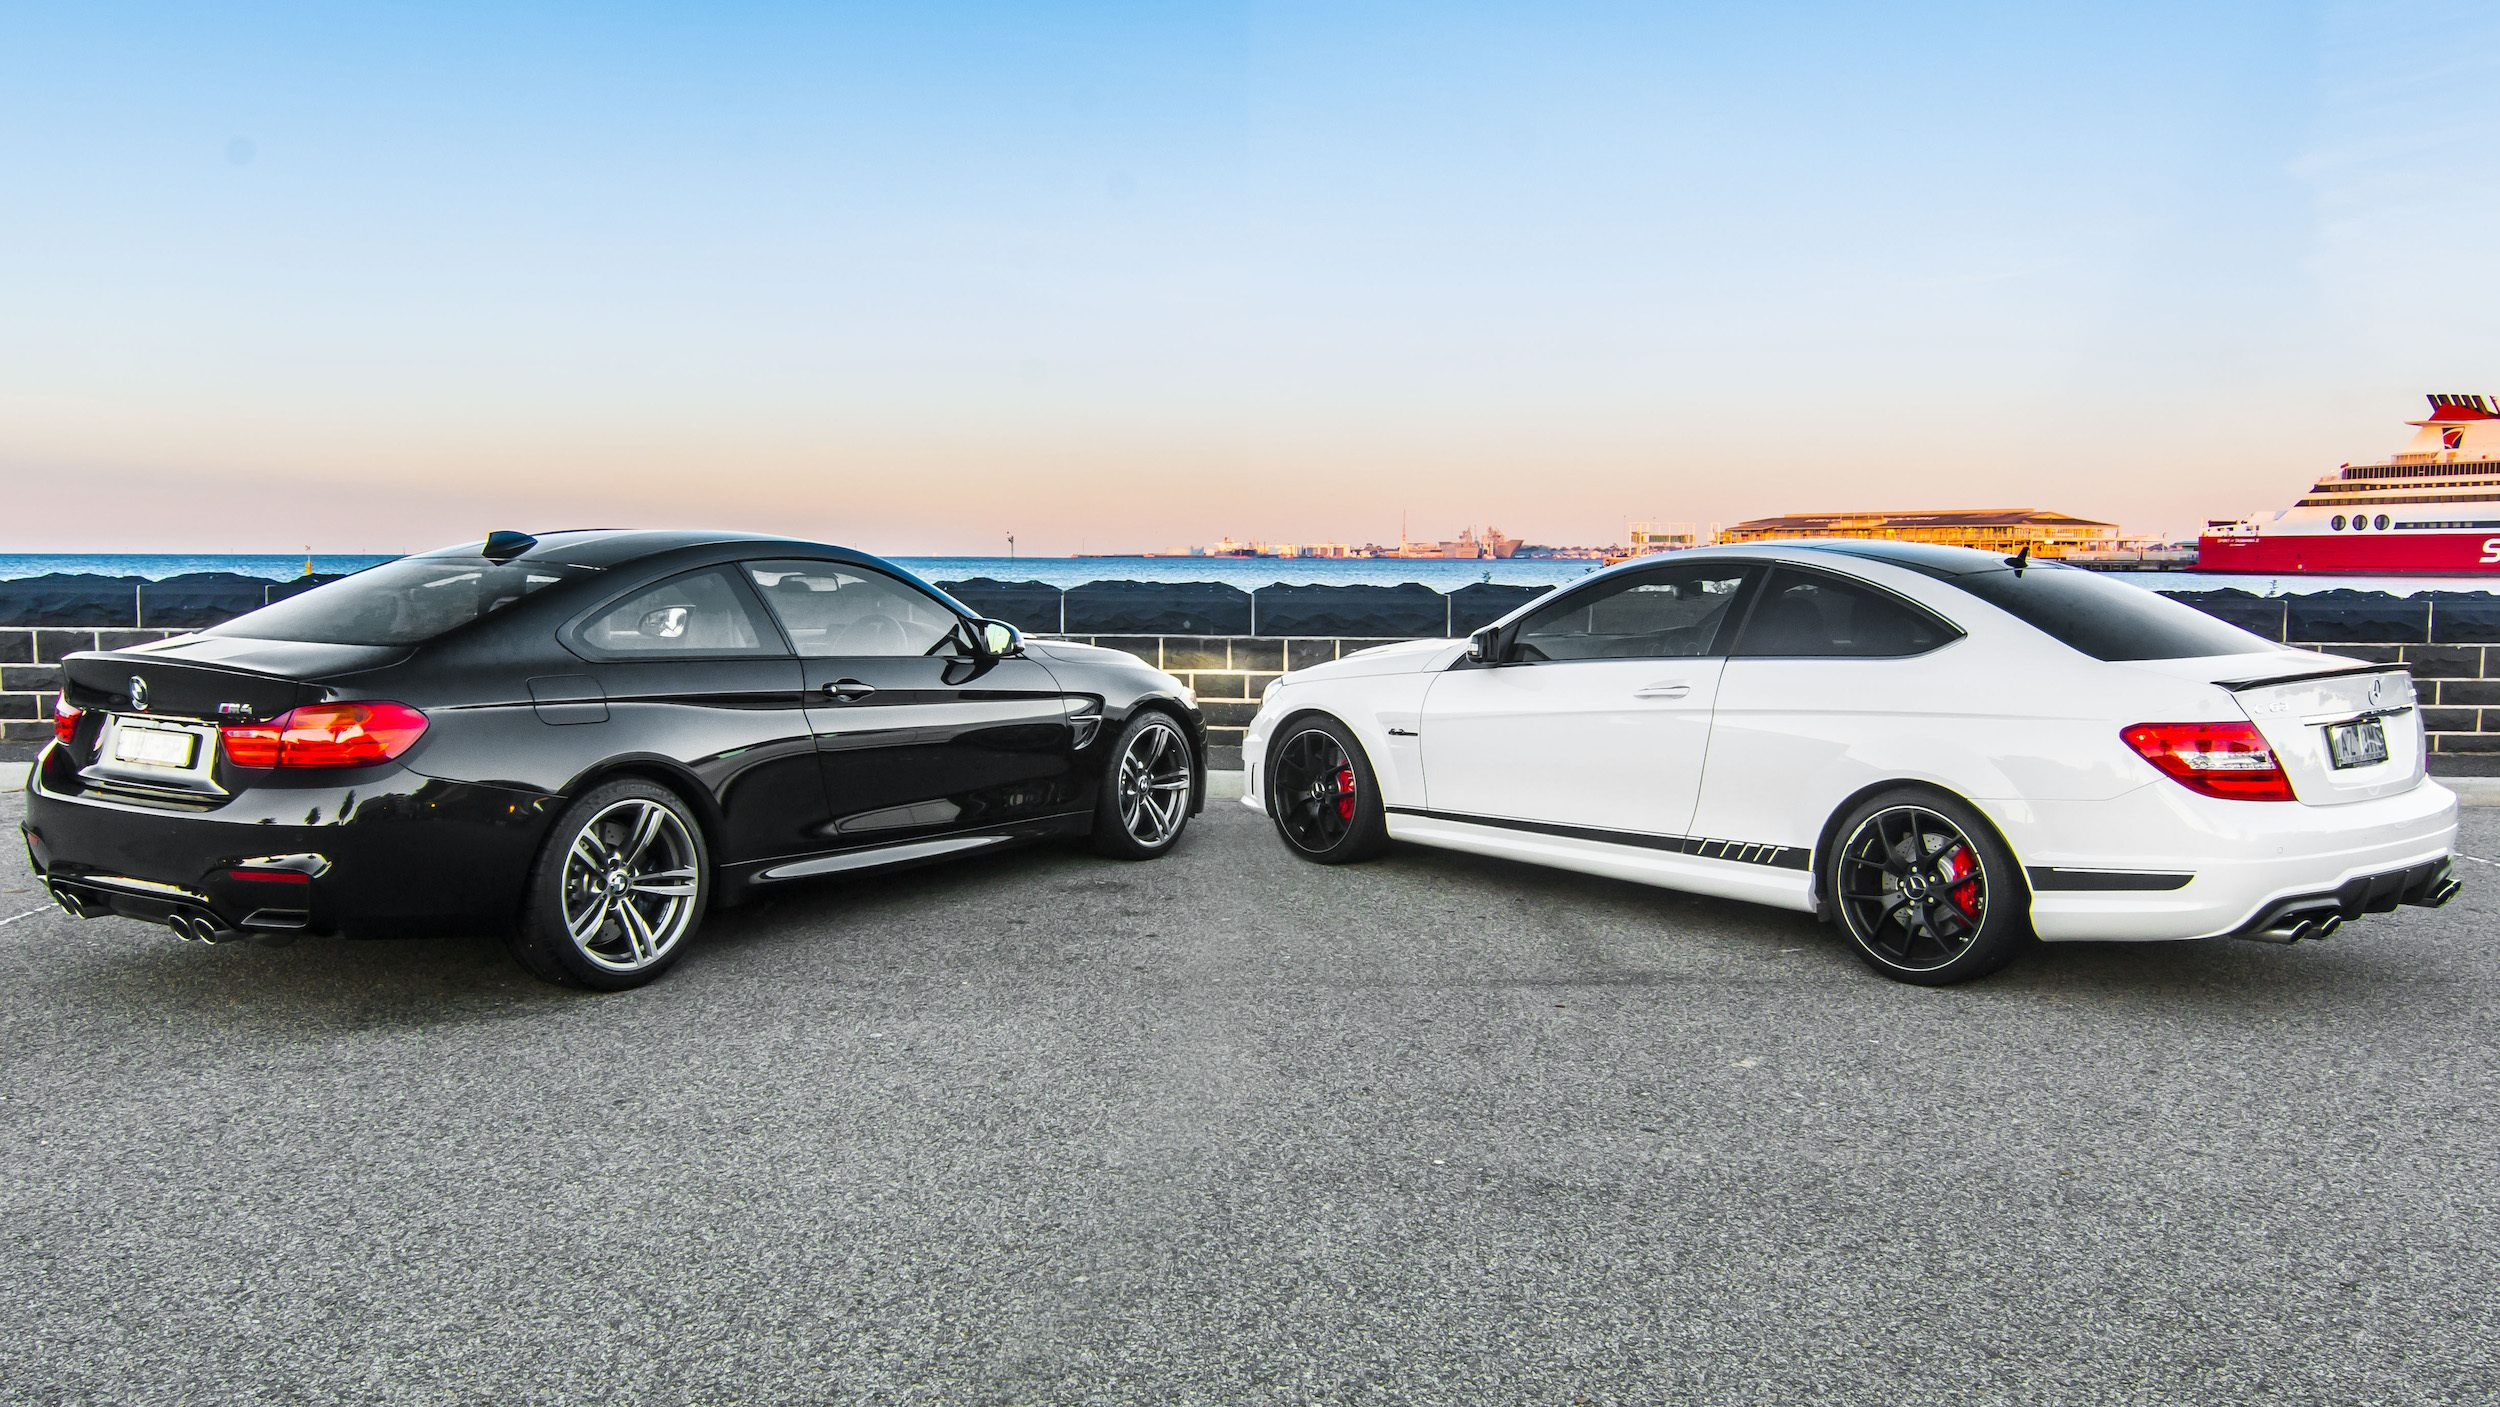 BMW M4 vs  Mercedes C63 AMG Edition 507 Comparison Review